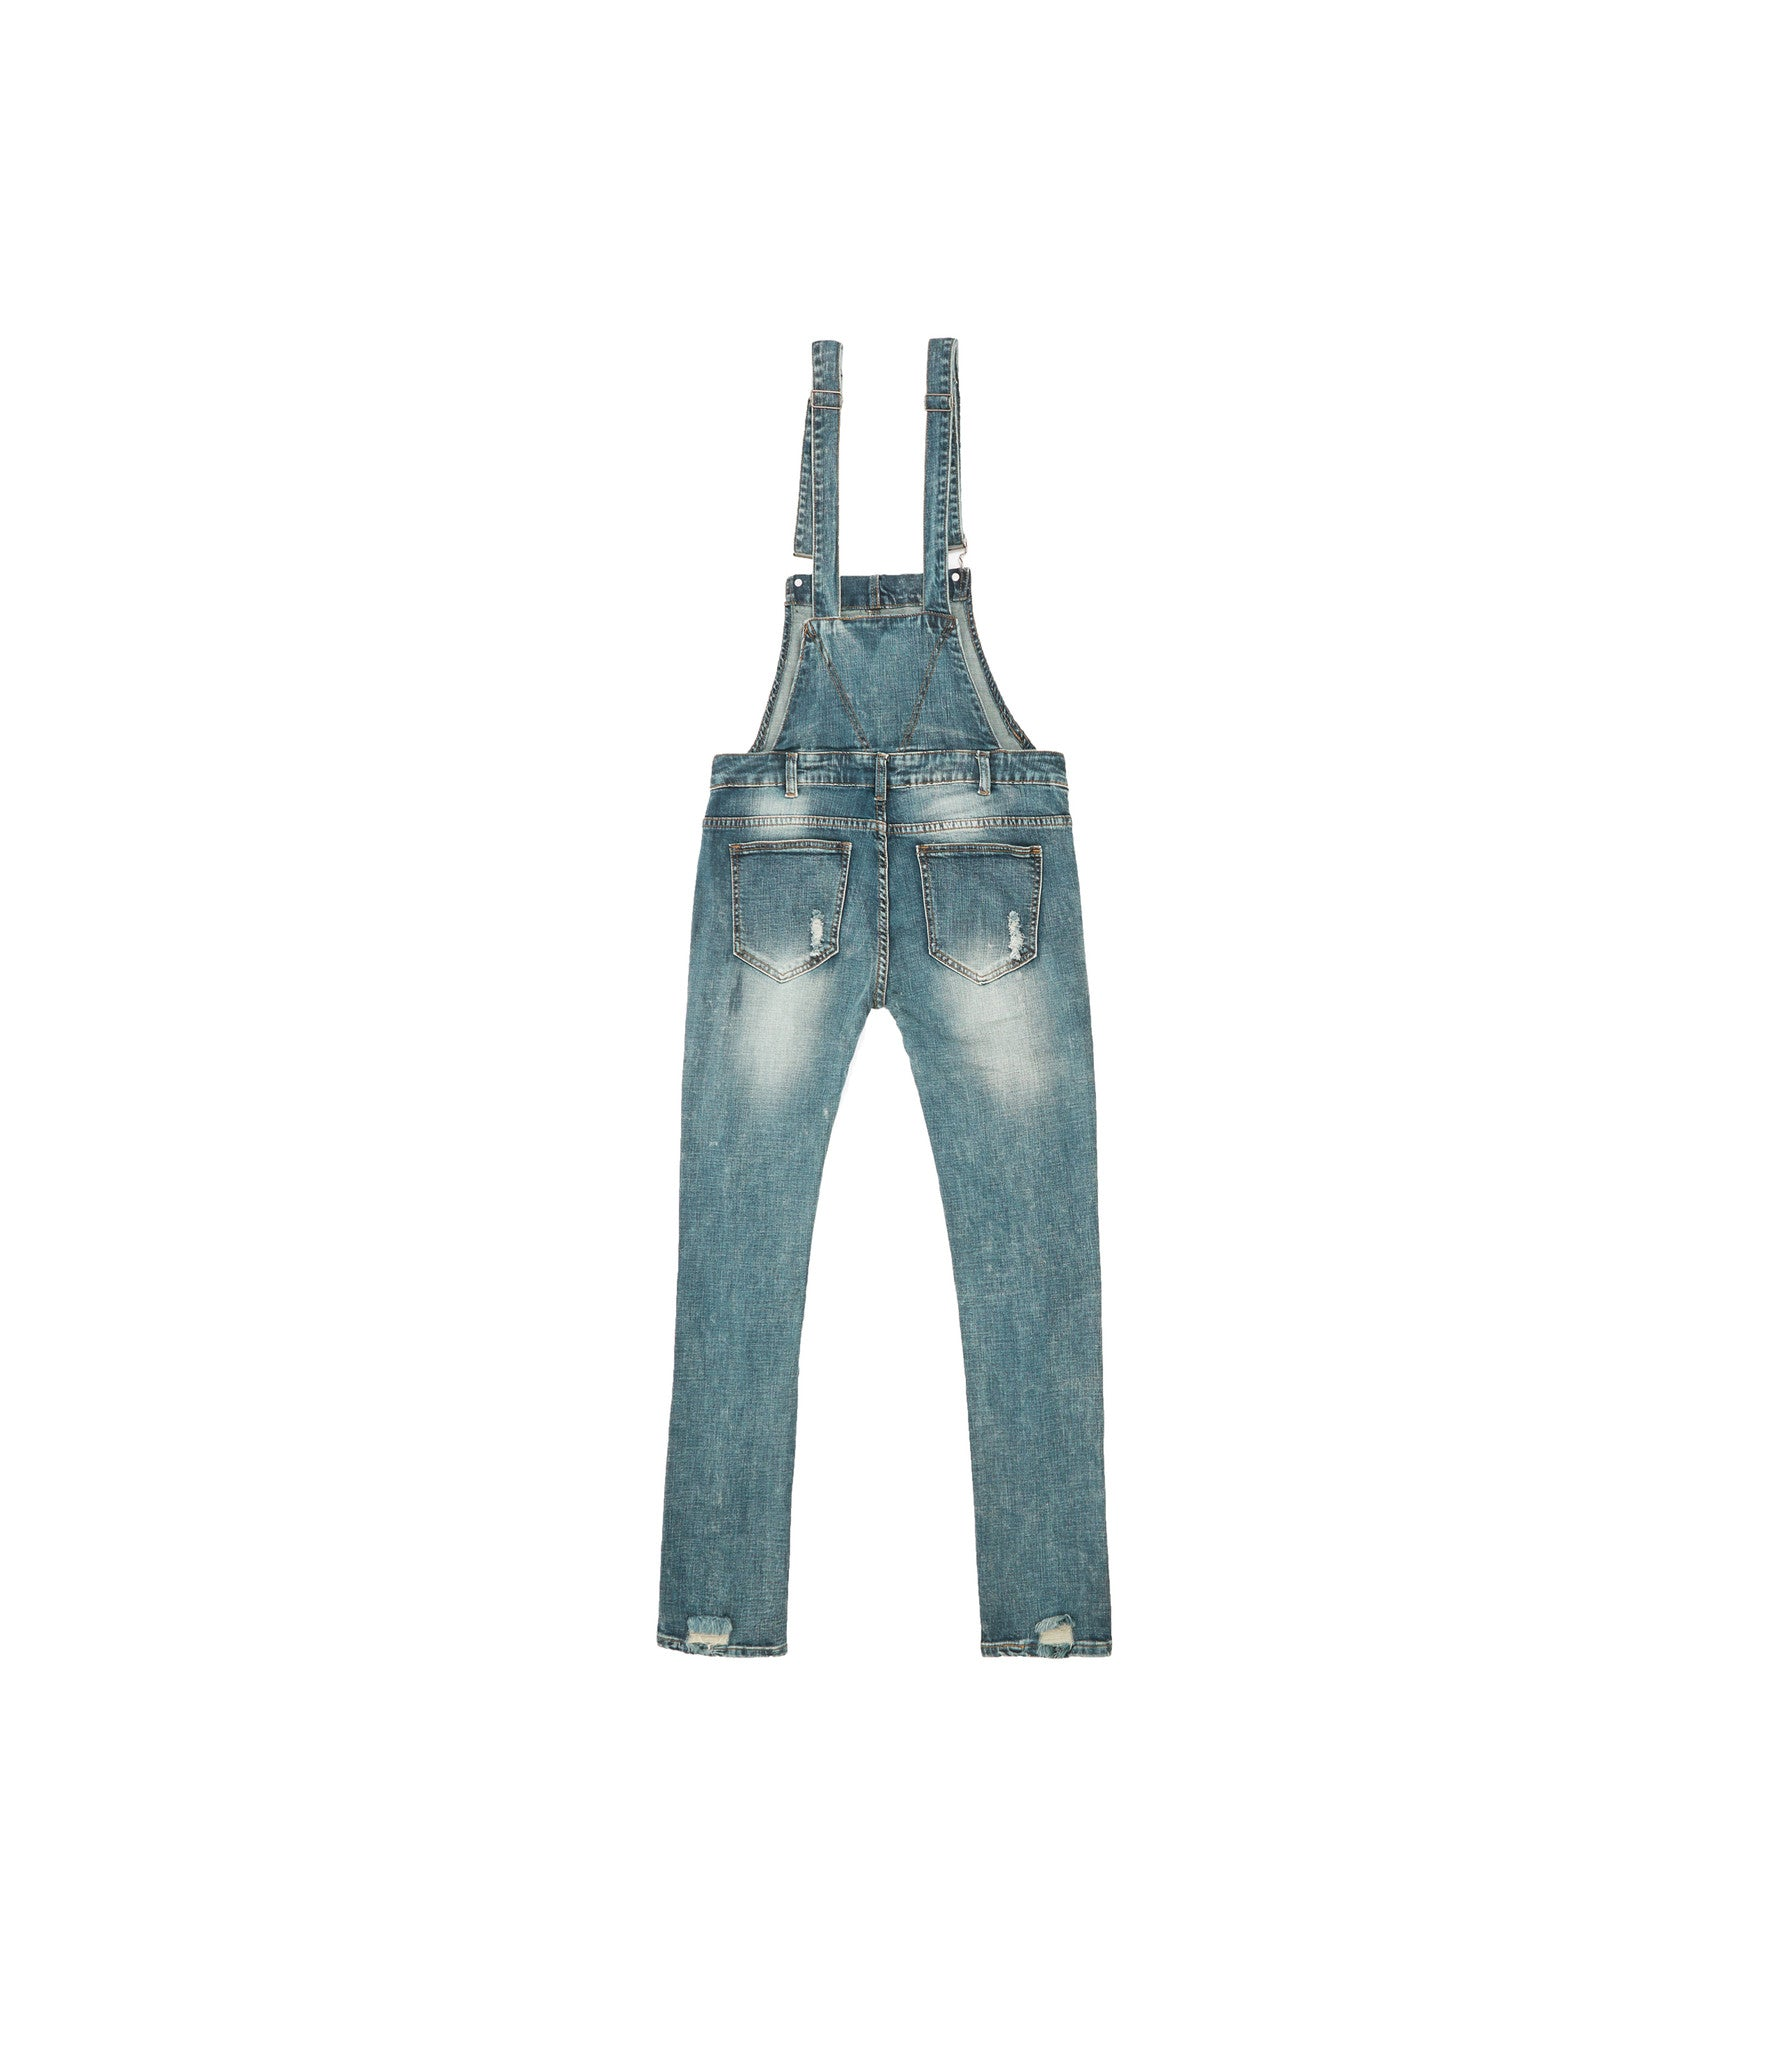 JN181 Distressed Stone Wash Dungaree Denim - Mid Blue - underated london - underatedco - 2